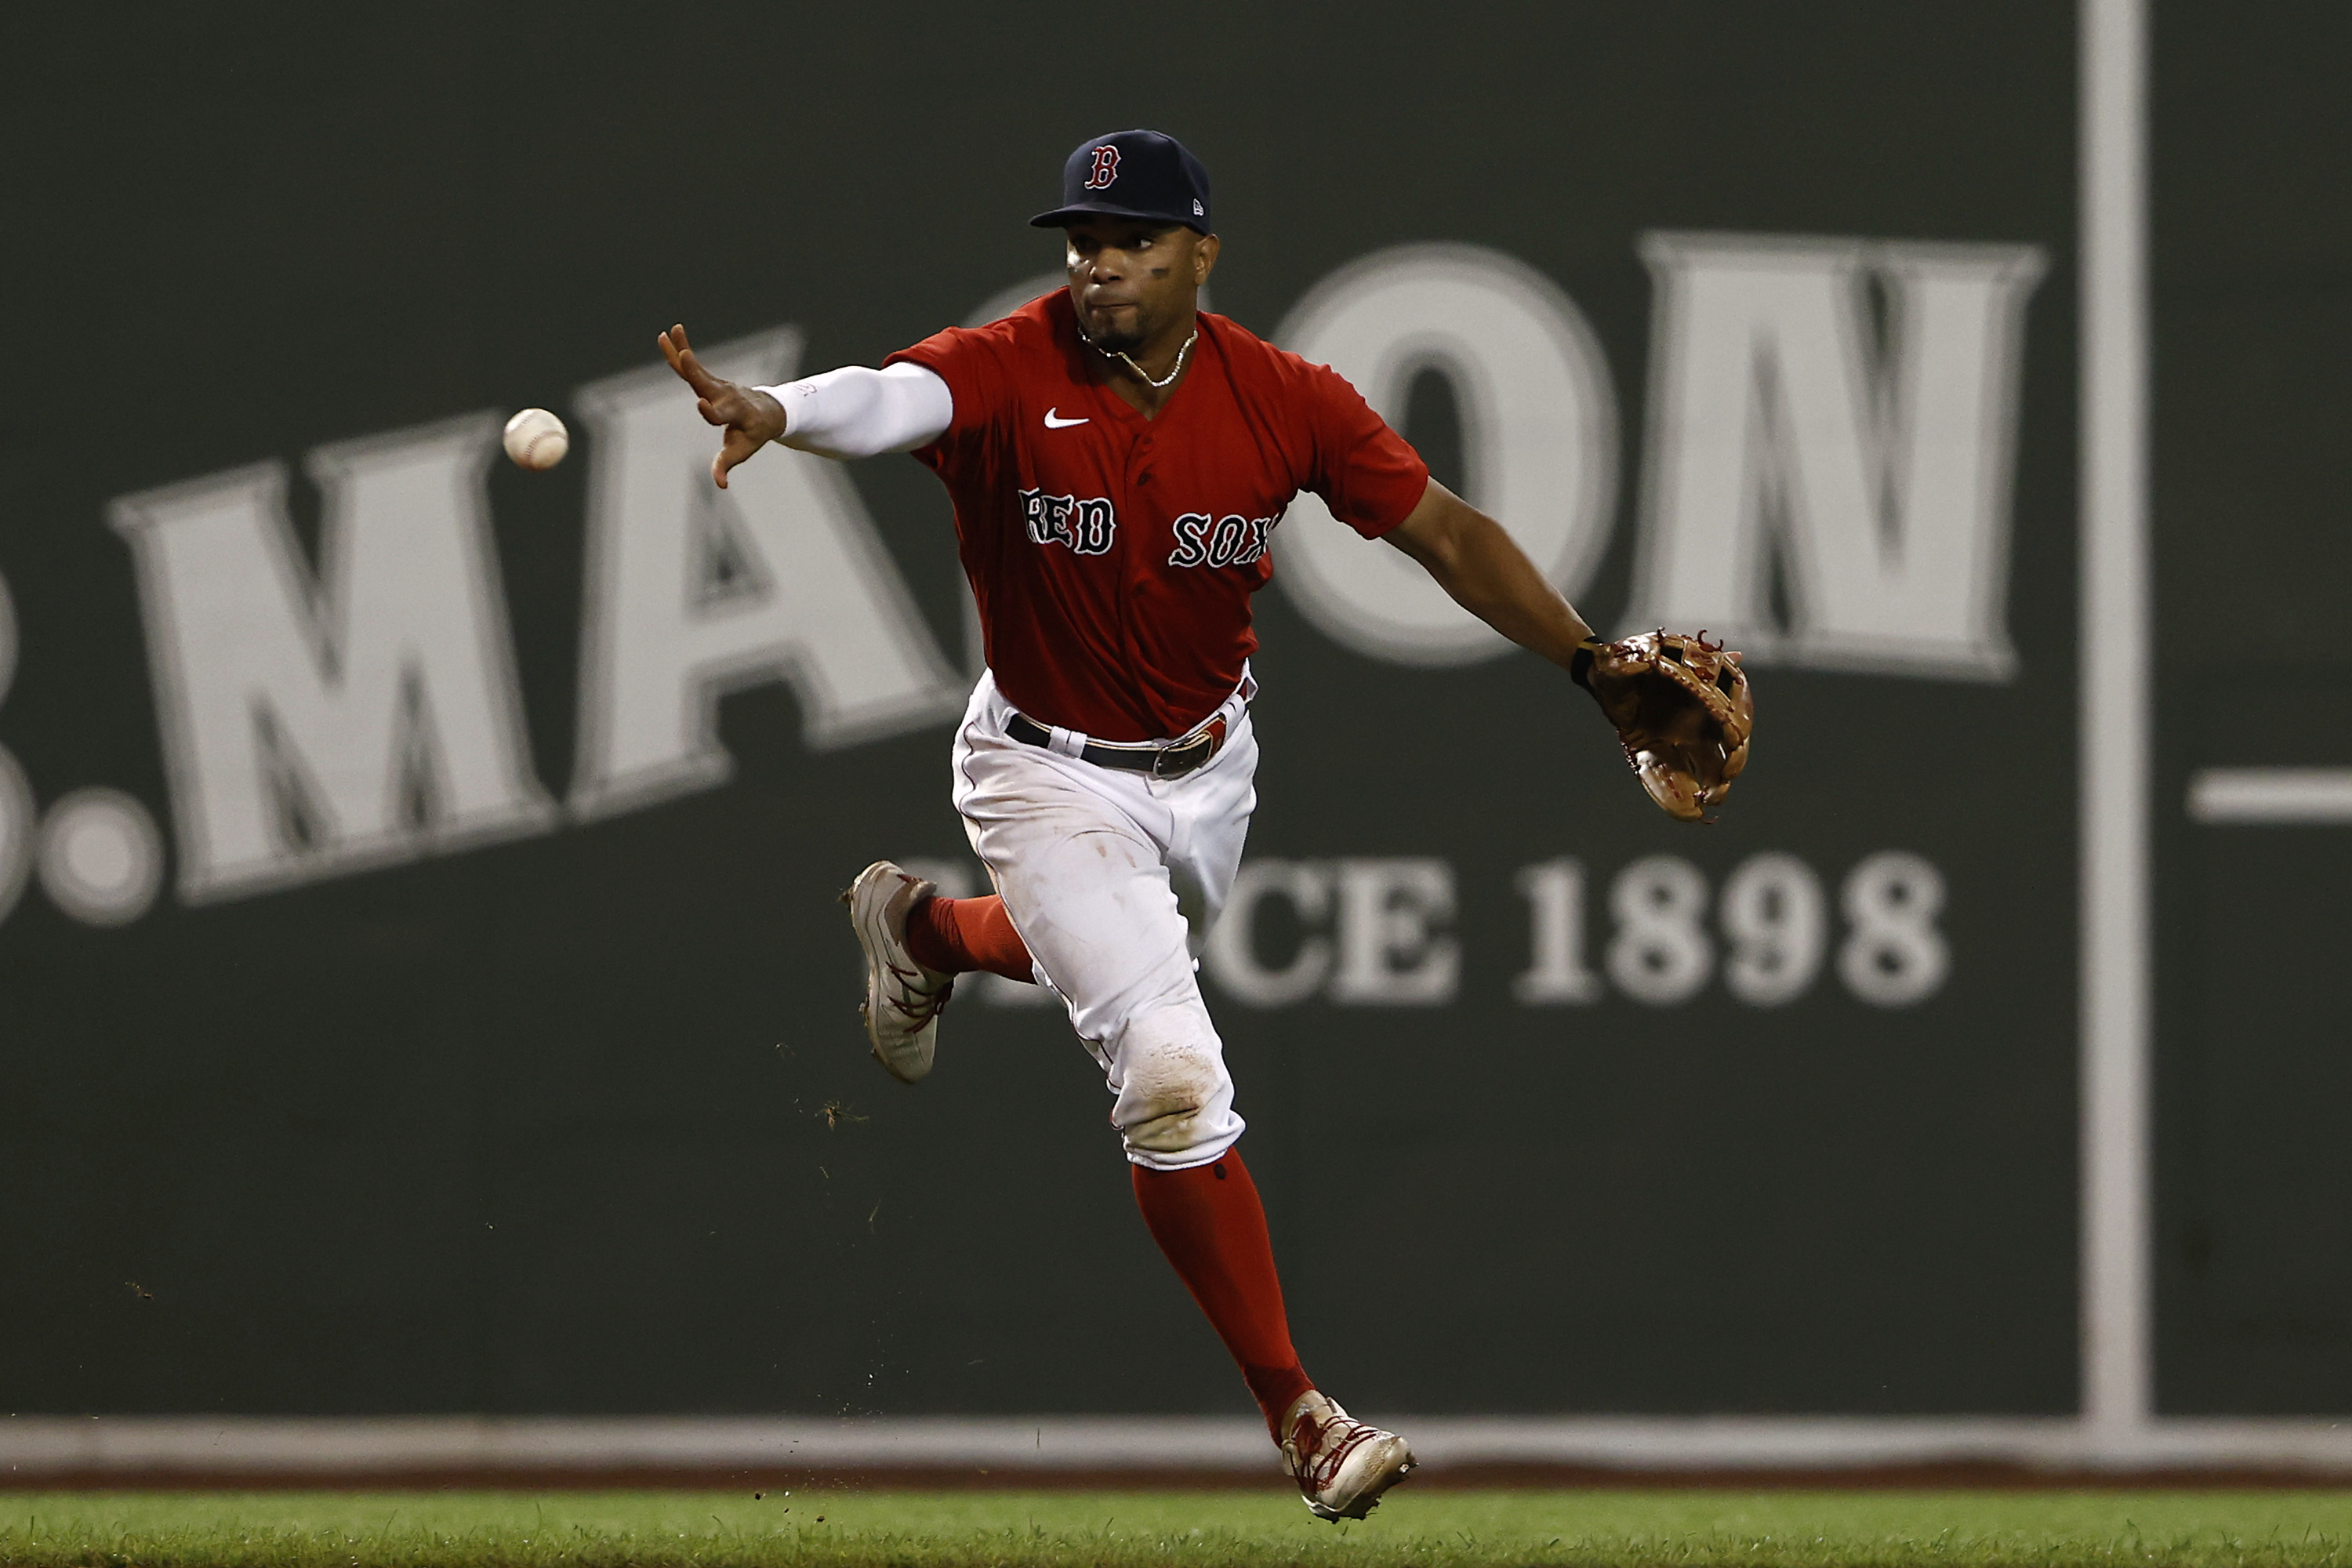 Xander Bogaerts #2 of the Boston Red Sox shovels the ball to second base for a force out during the sixth inning against the Texas Rangers at Fenway Park on August 21, 2021 in Boston, Massachusetts.